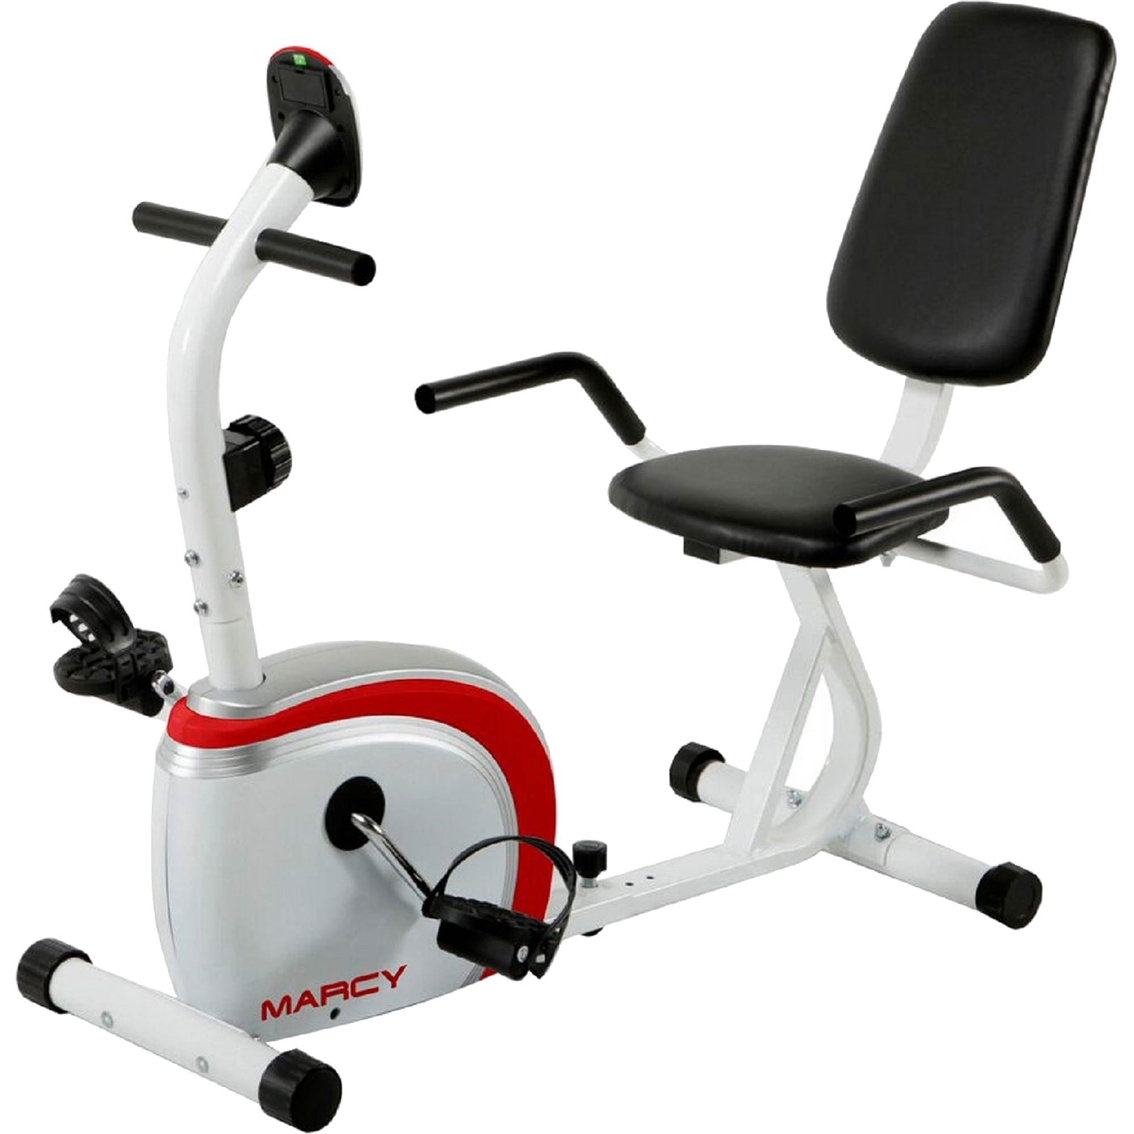 Marcy Recumbent Exercise Bike Ns 716r: Marcy Recumbent Magnetic Resistance Exercise Bike, Ns 908r